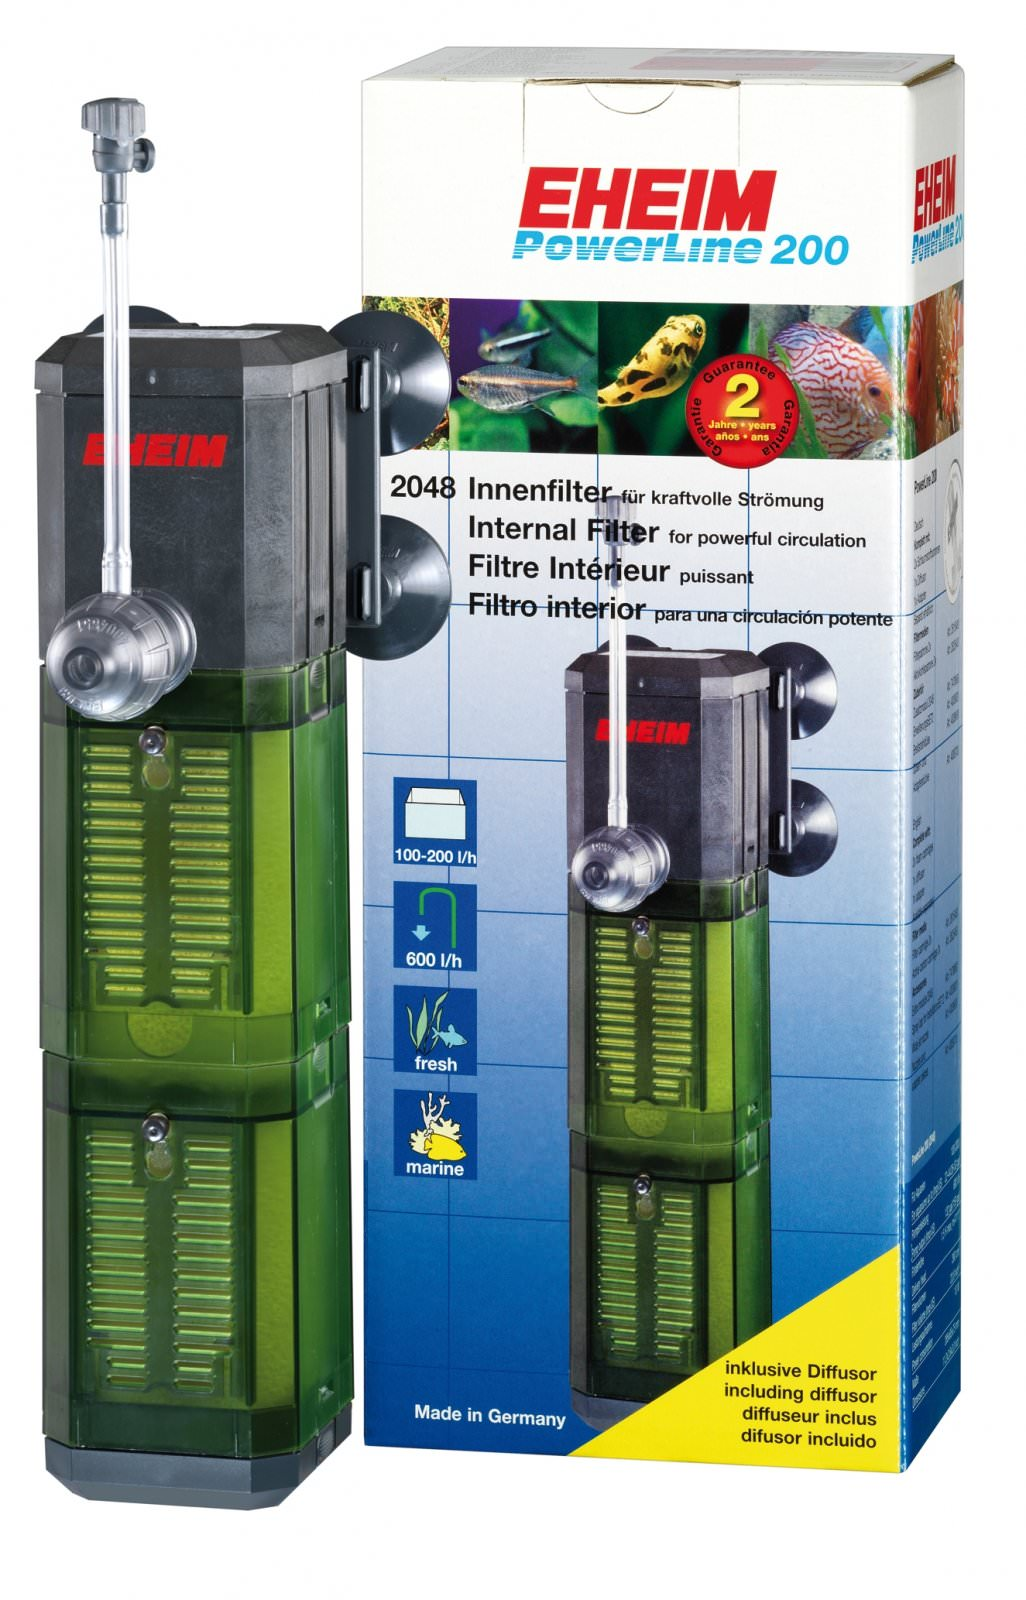 Eheim 2048 powerline filtre modulaire haute performance for Aquarium interieur